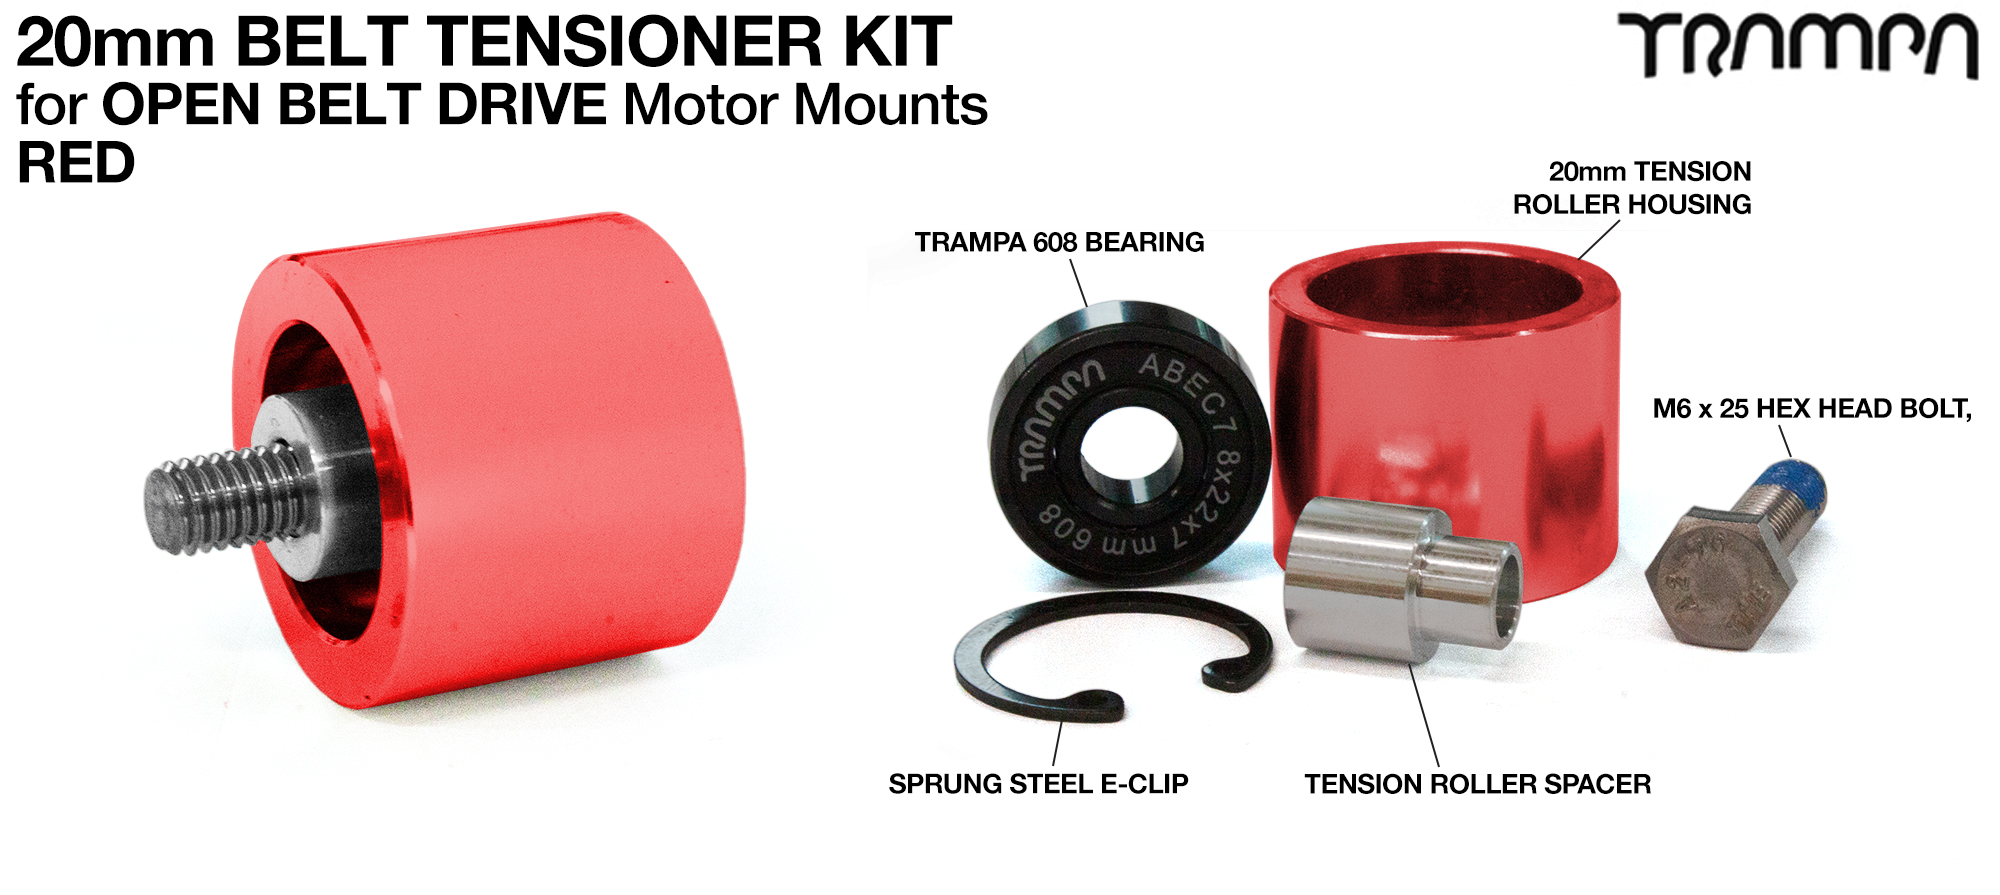 RED OBD 20mm Belt Tensioners